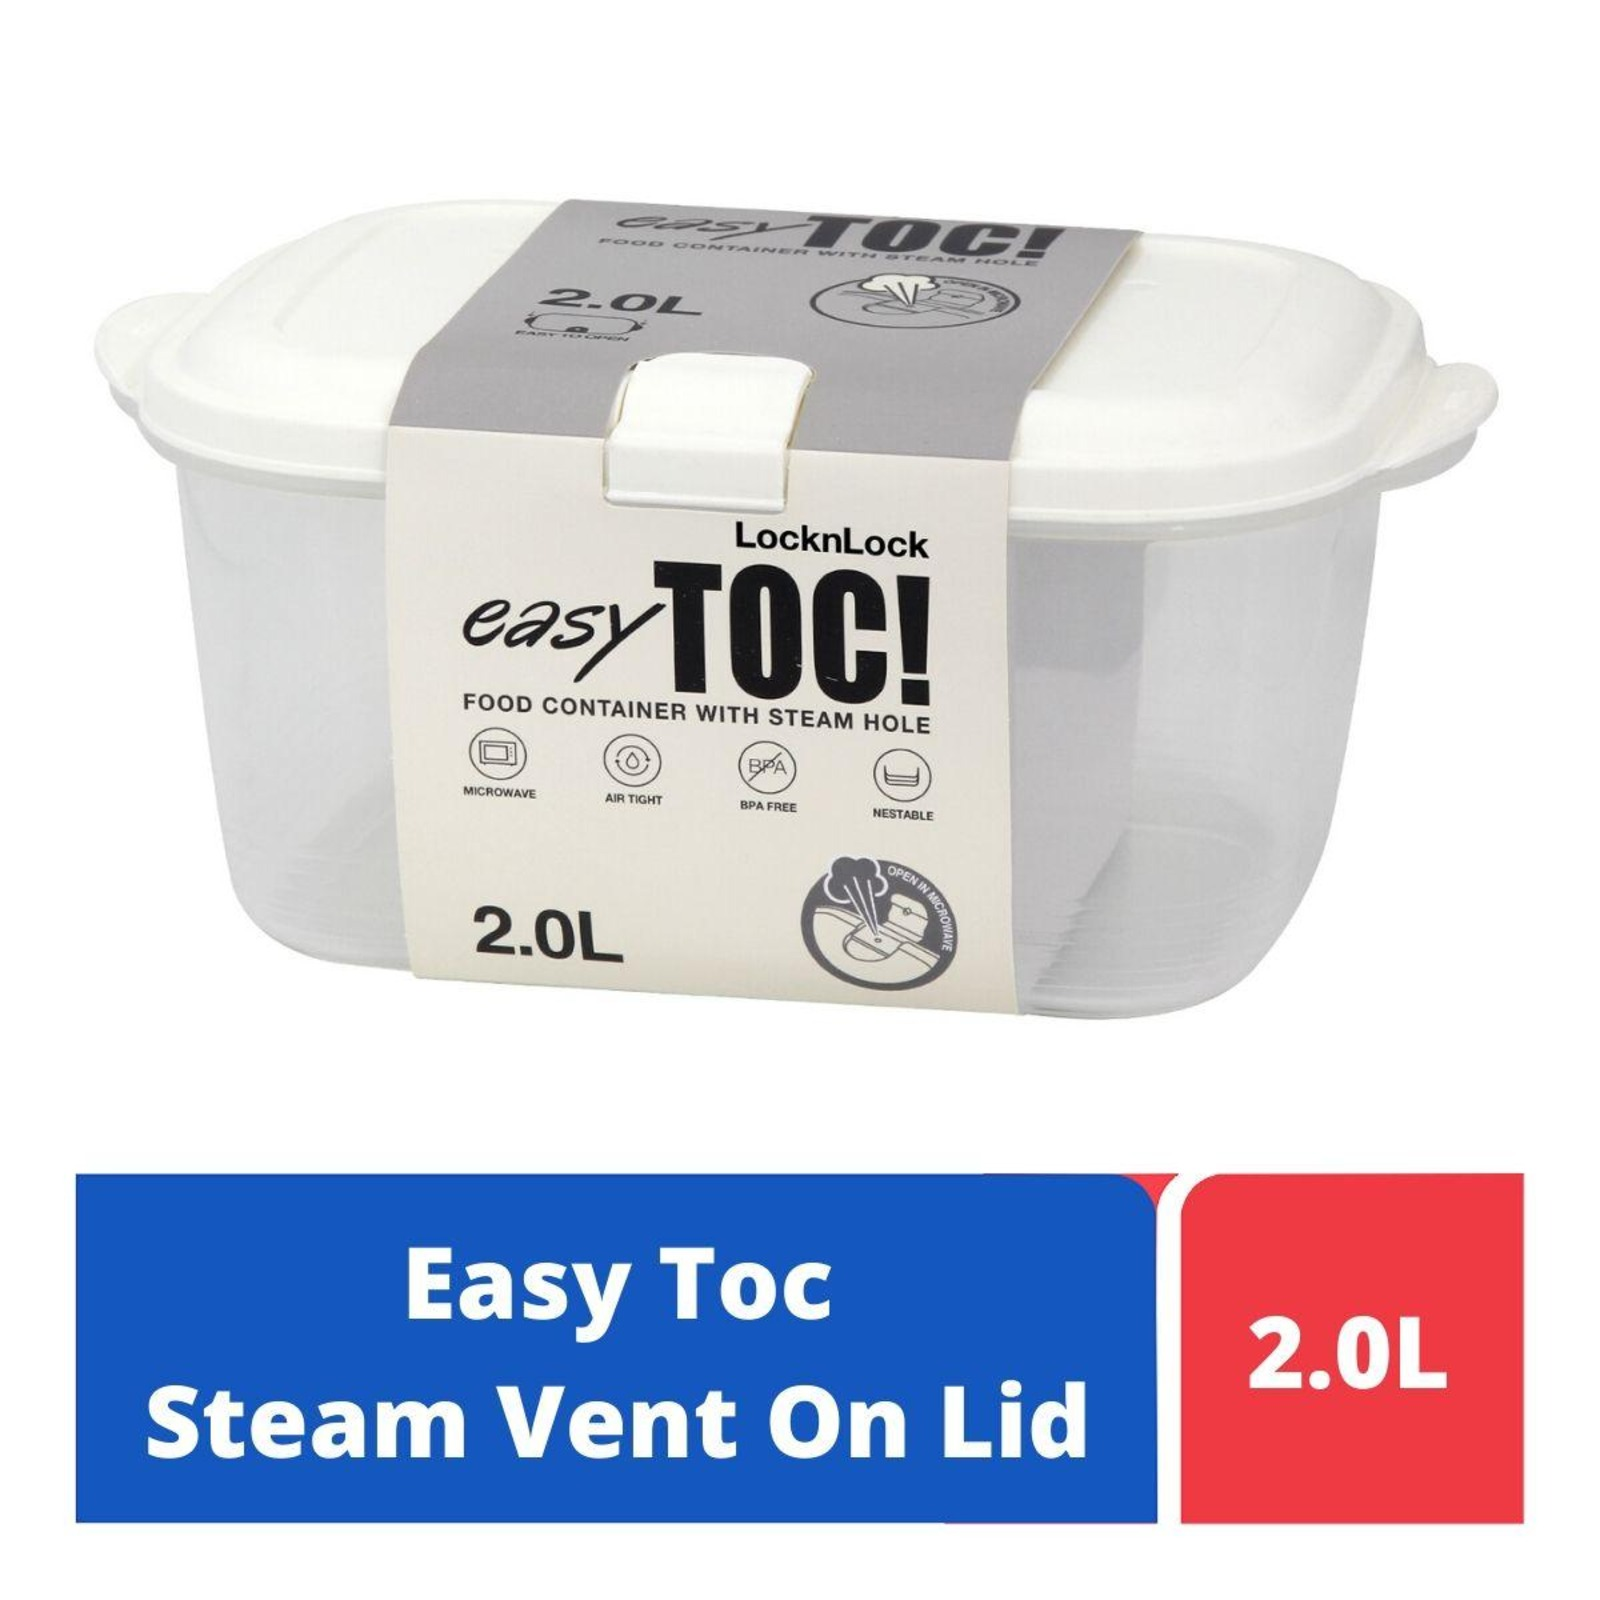 LOCK&LOCK Easy Toc Food Container 2.0L - White